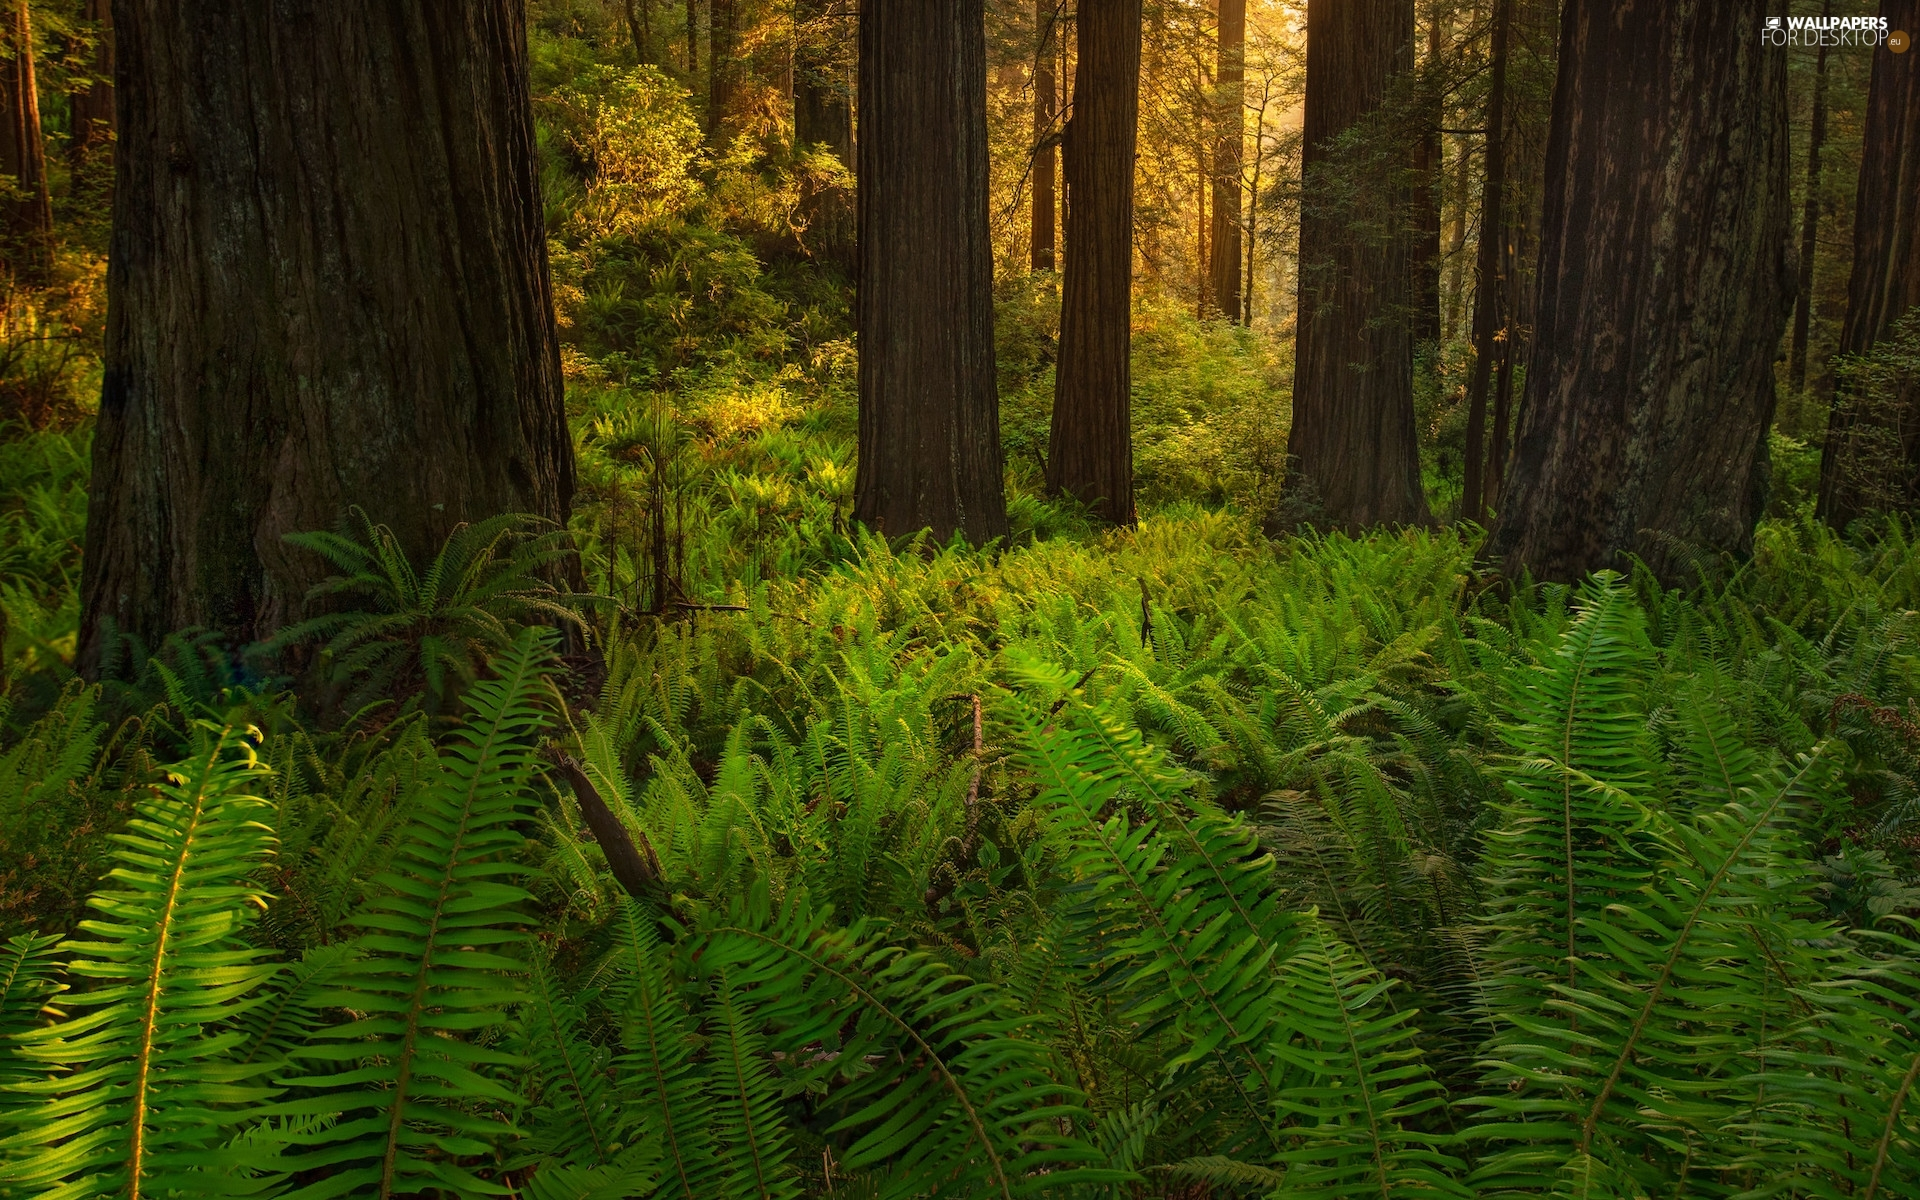 forest, California, viewes, Redwood National Park, The United States, trees, fern